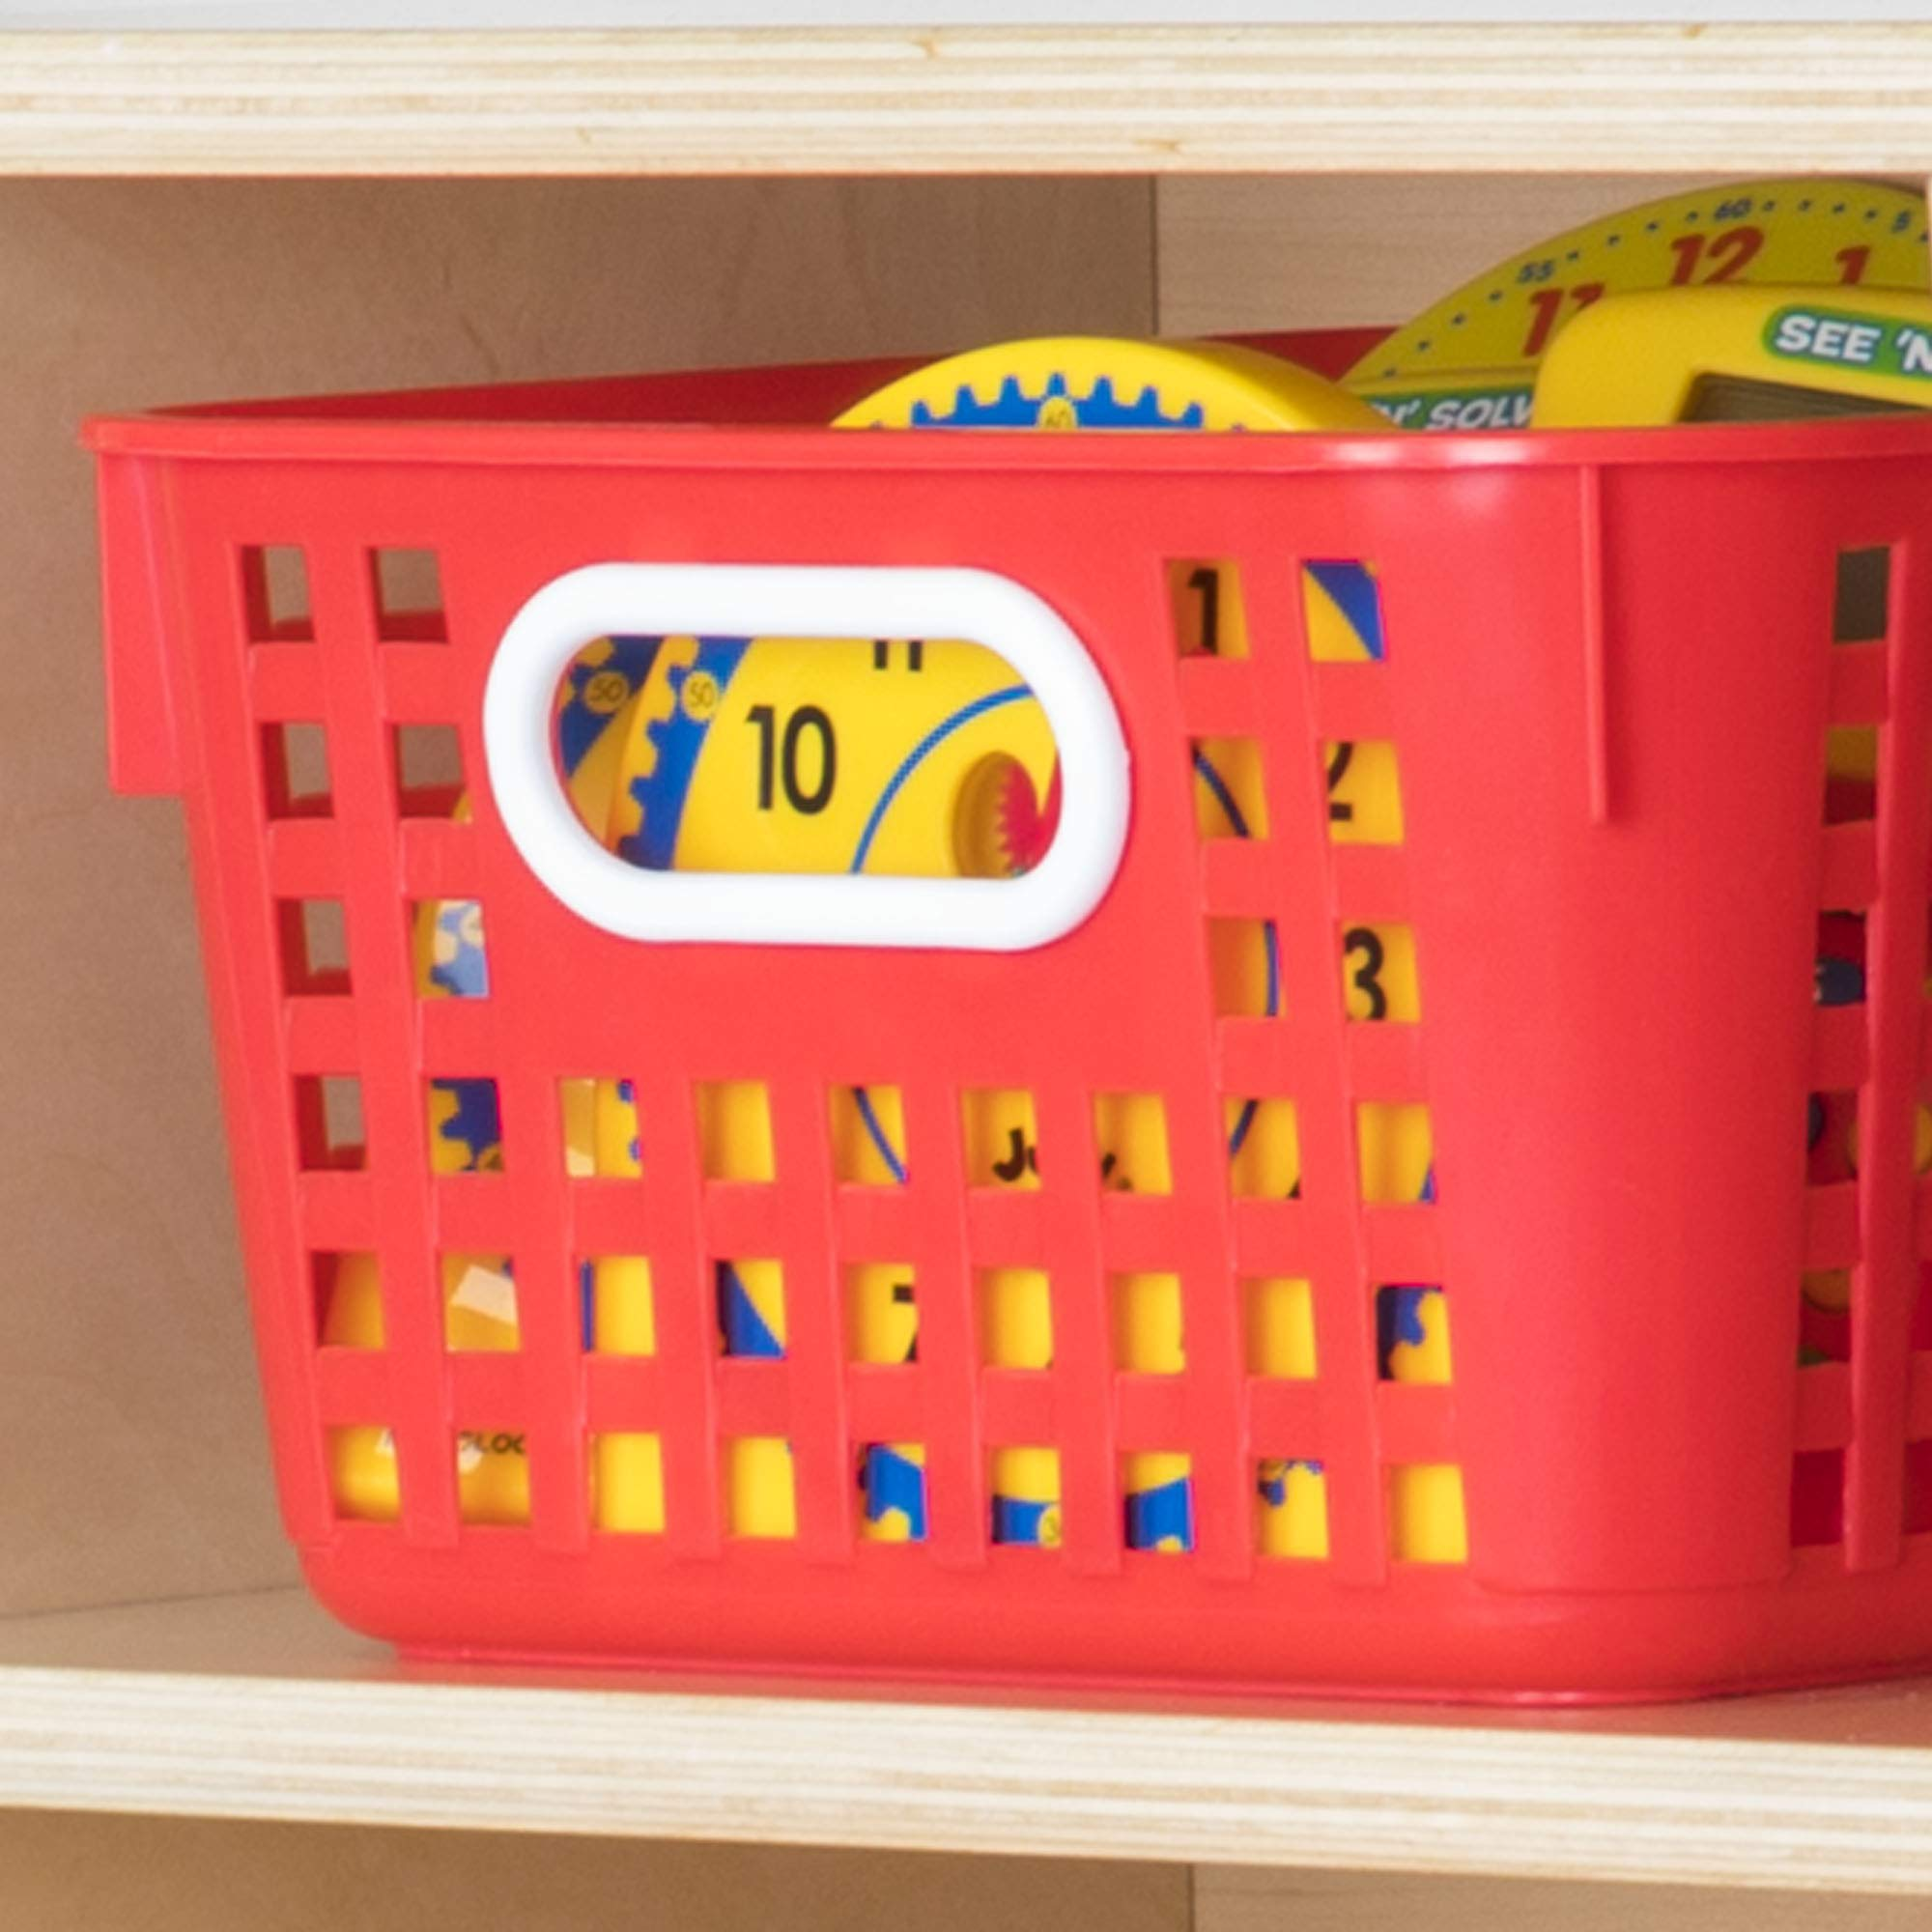 Really Good Stuff Multi-Purpose Plastic Storage Baskets for Classroom or Home Use - Stackable Mesh Plastic Baskets with Grip Handles 13'' x 10'' (Single-Color Set of 12) by Really Good Stuff